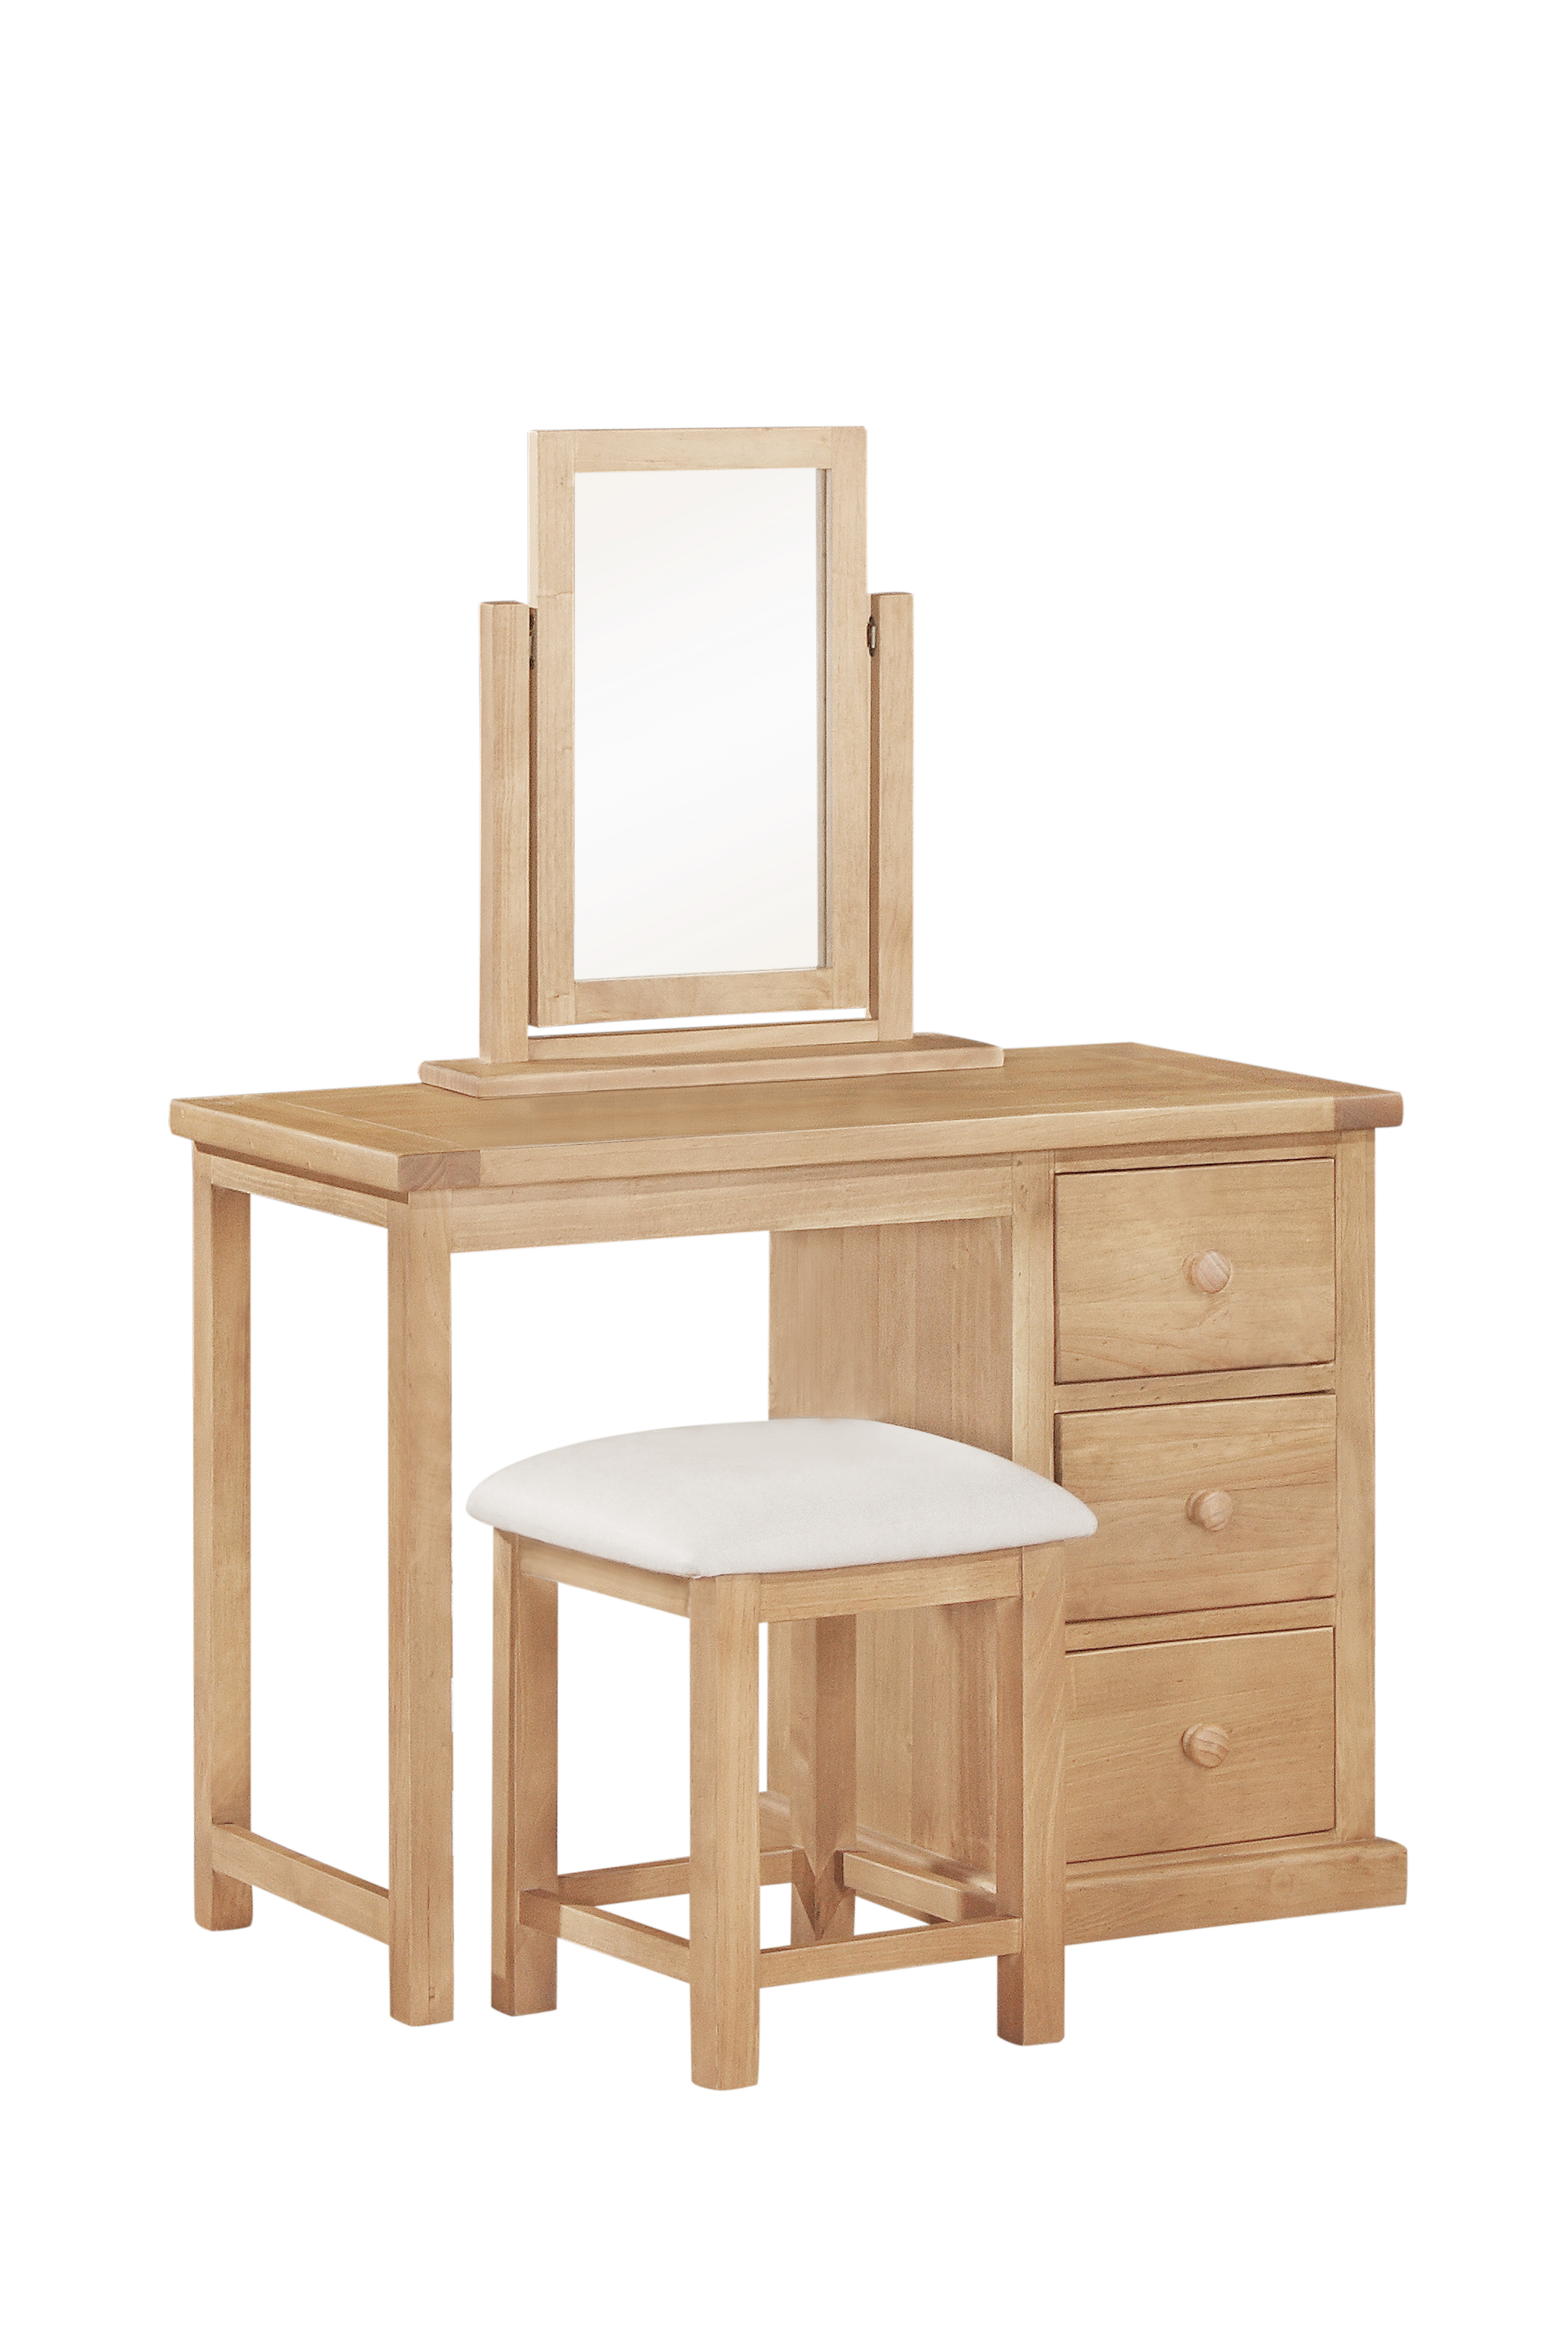 Rutland Pine Dressing Table And Stool Cott Farm Furniture